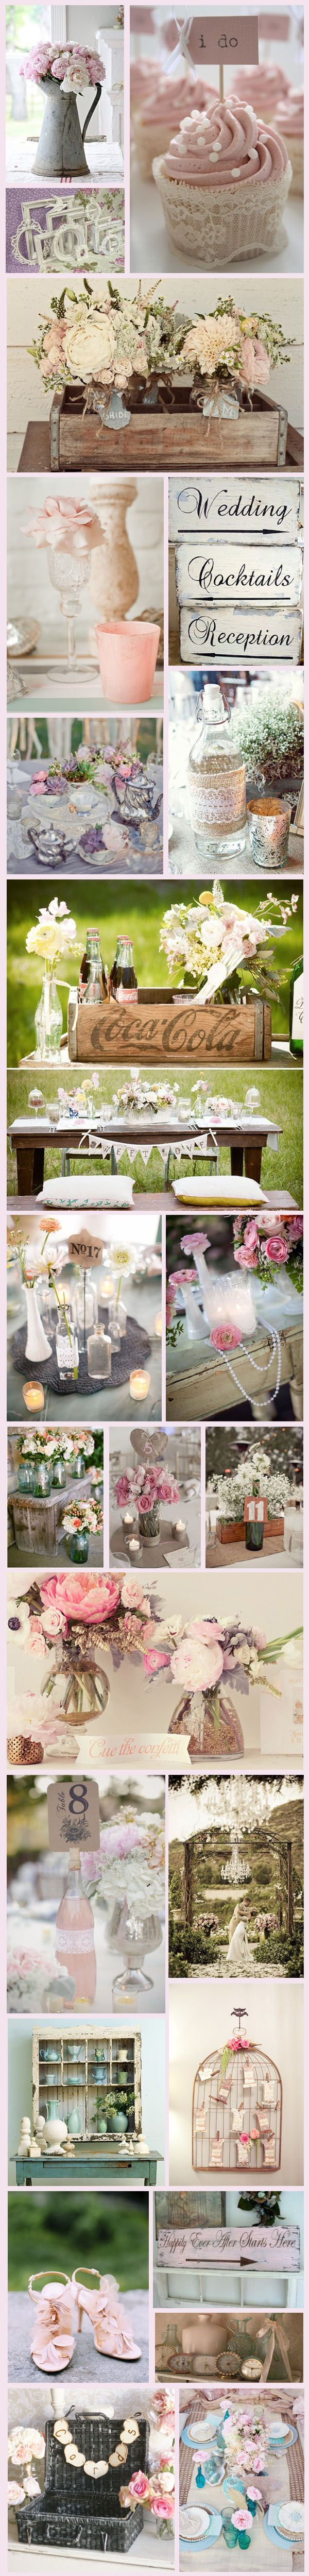 Wednesday Wedding Inspiration: We ♥ Shabby Chic!